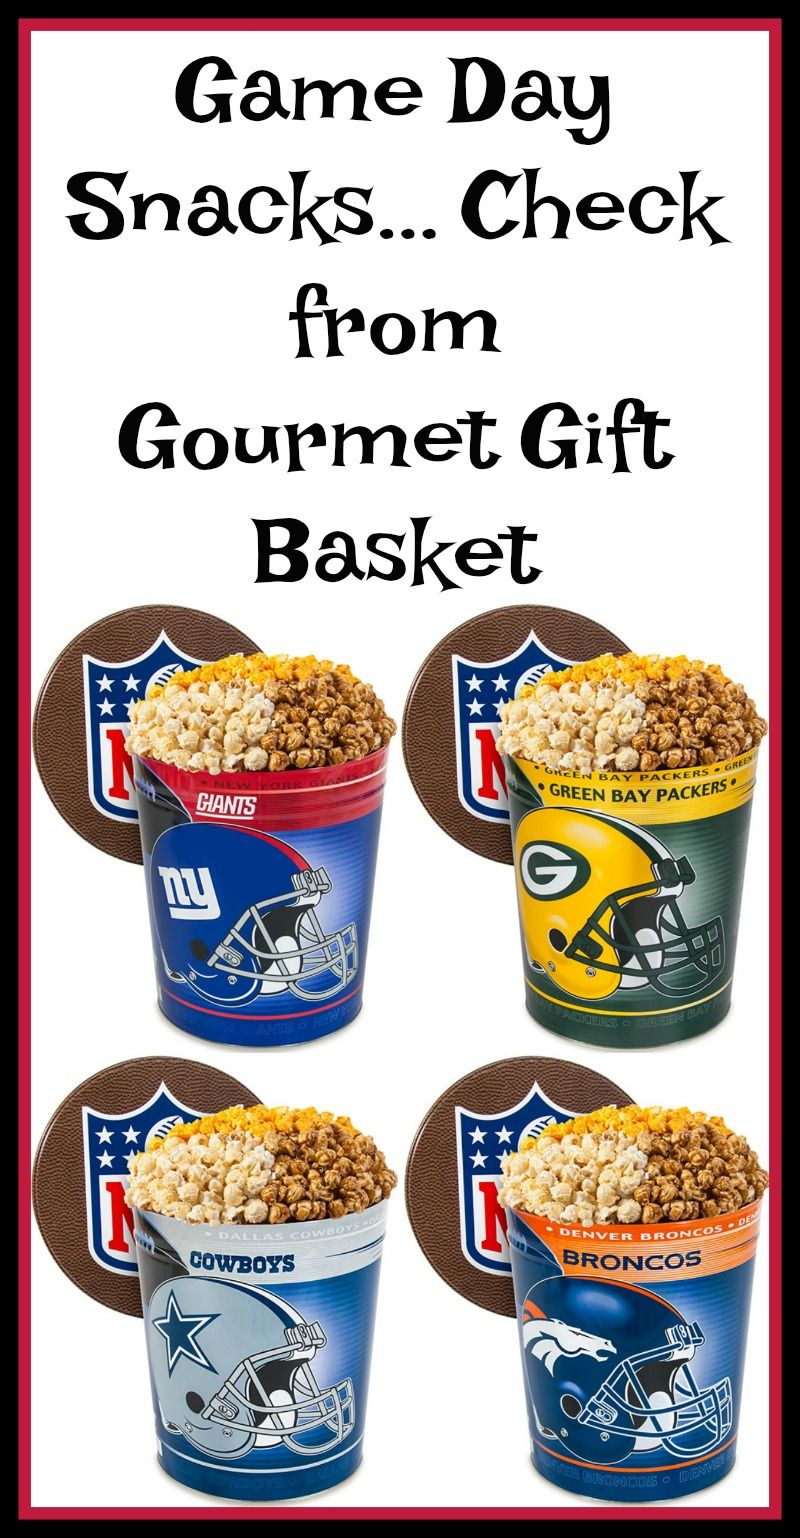 Preparing For The Big Game With Gourmet Gift Baskets (With